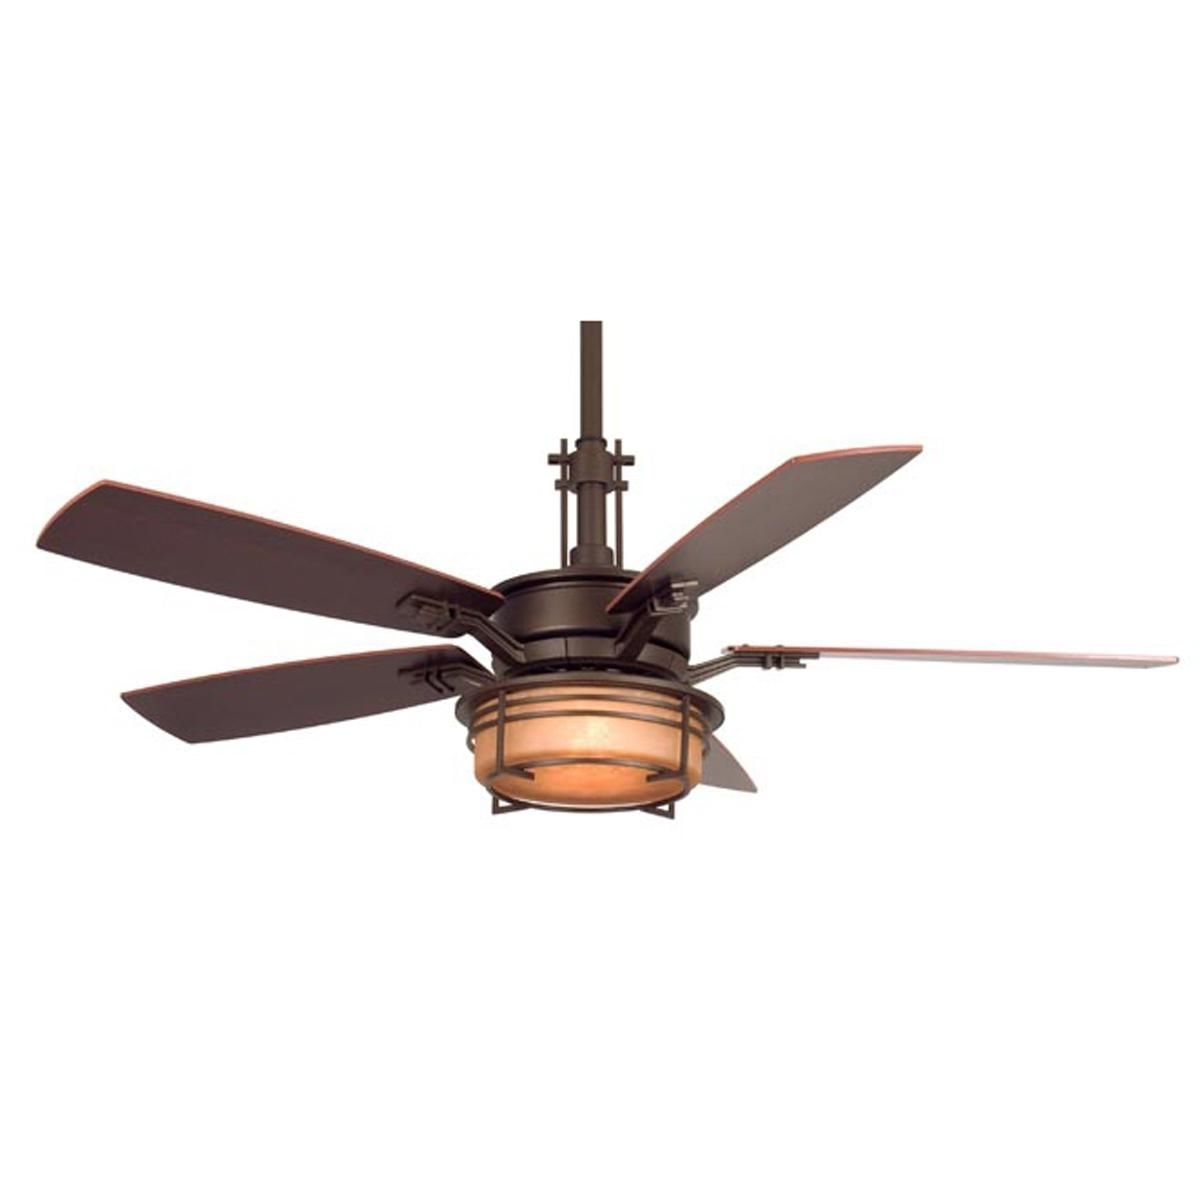 "Widely Used Gold Coast Outdoor Ceiling Fans Pertaining To 54"" Craftsman Style Ceiling Fan The Craftsman Ceiling Fan Features (View 20 of 20)"